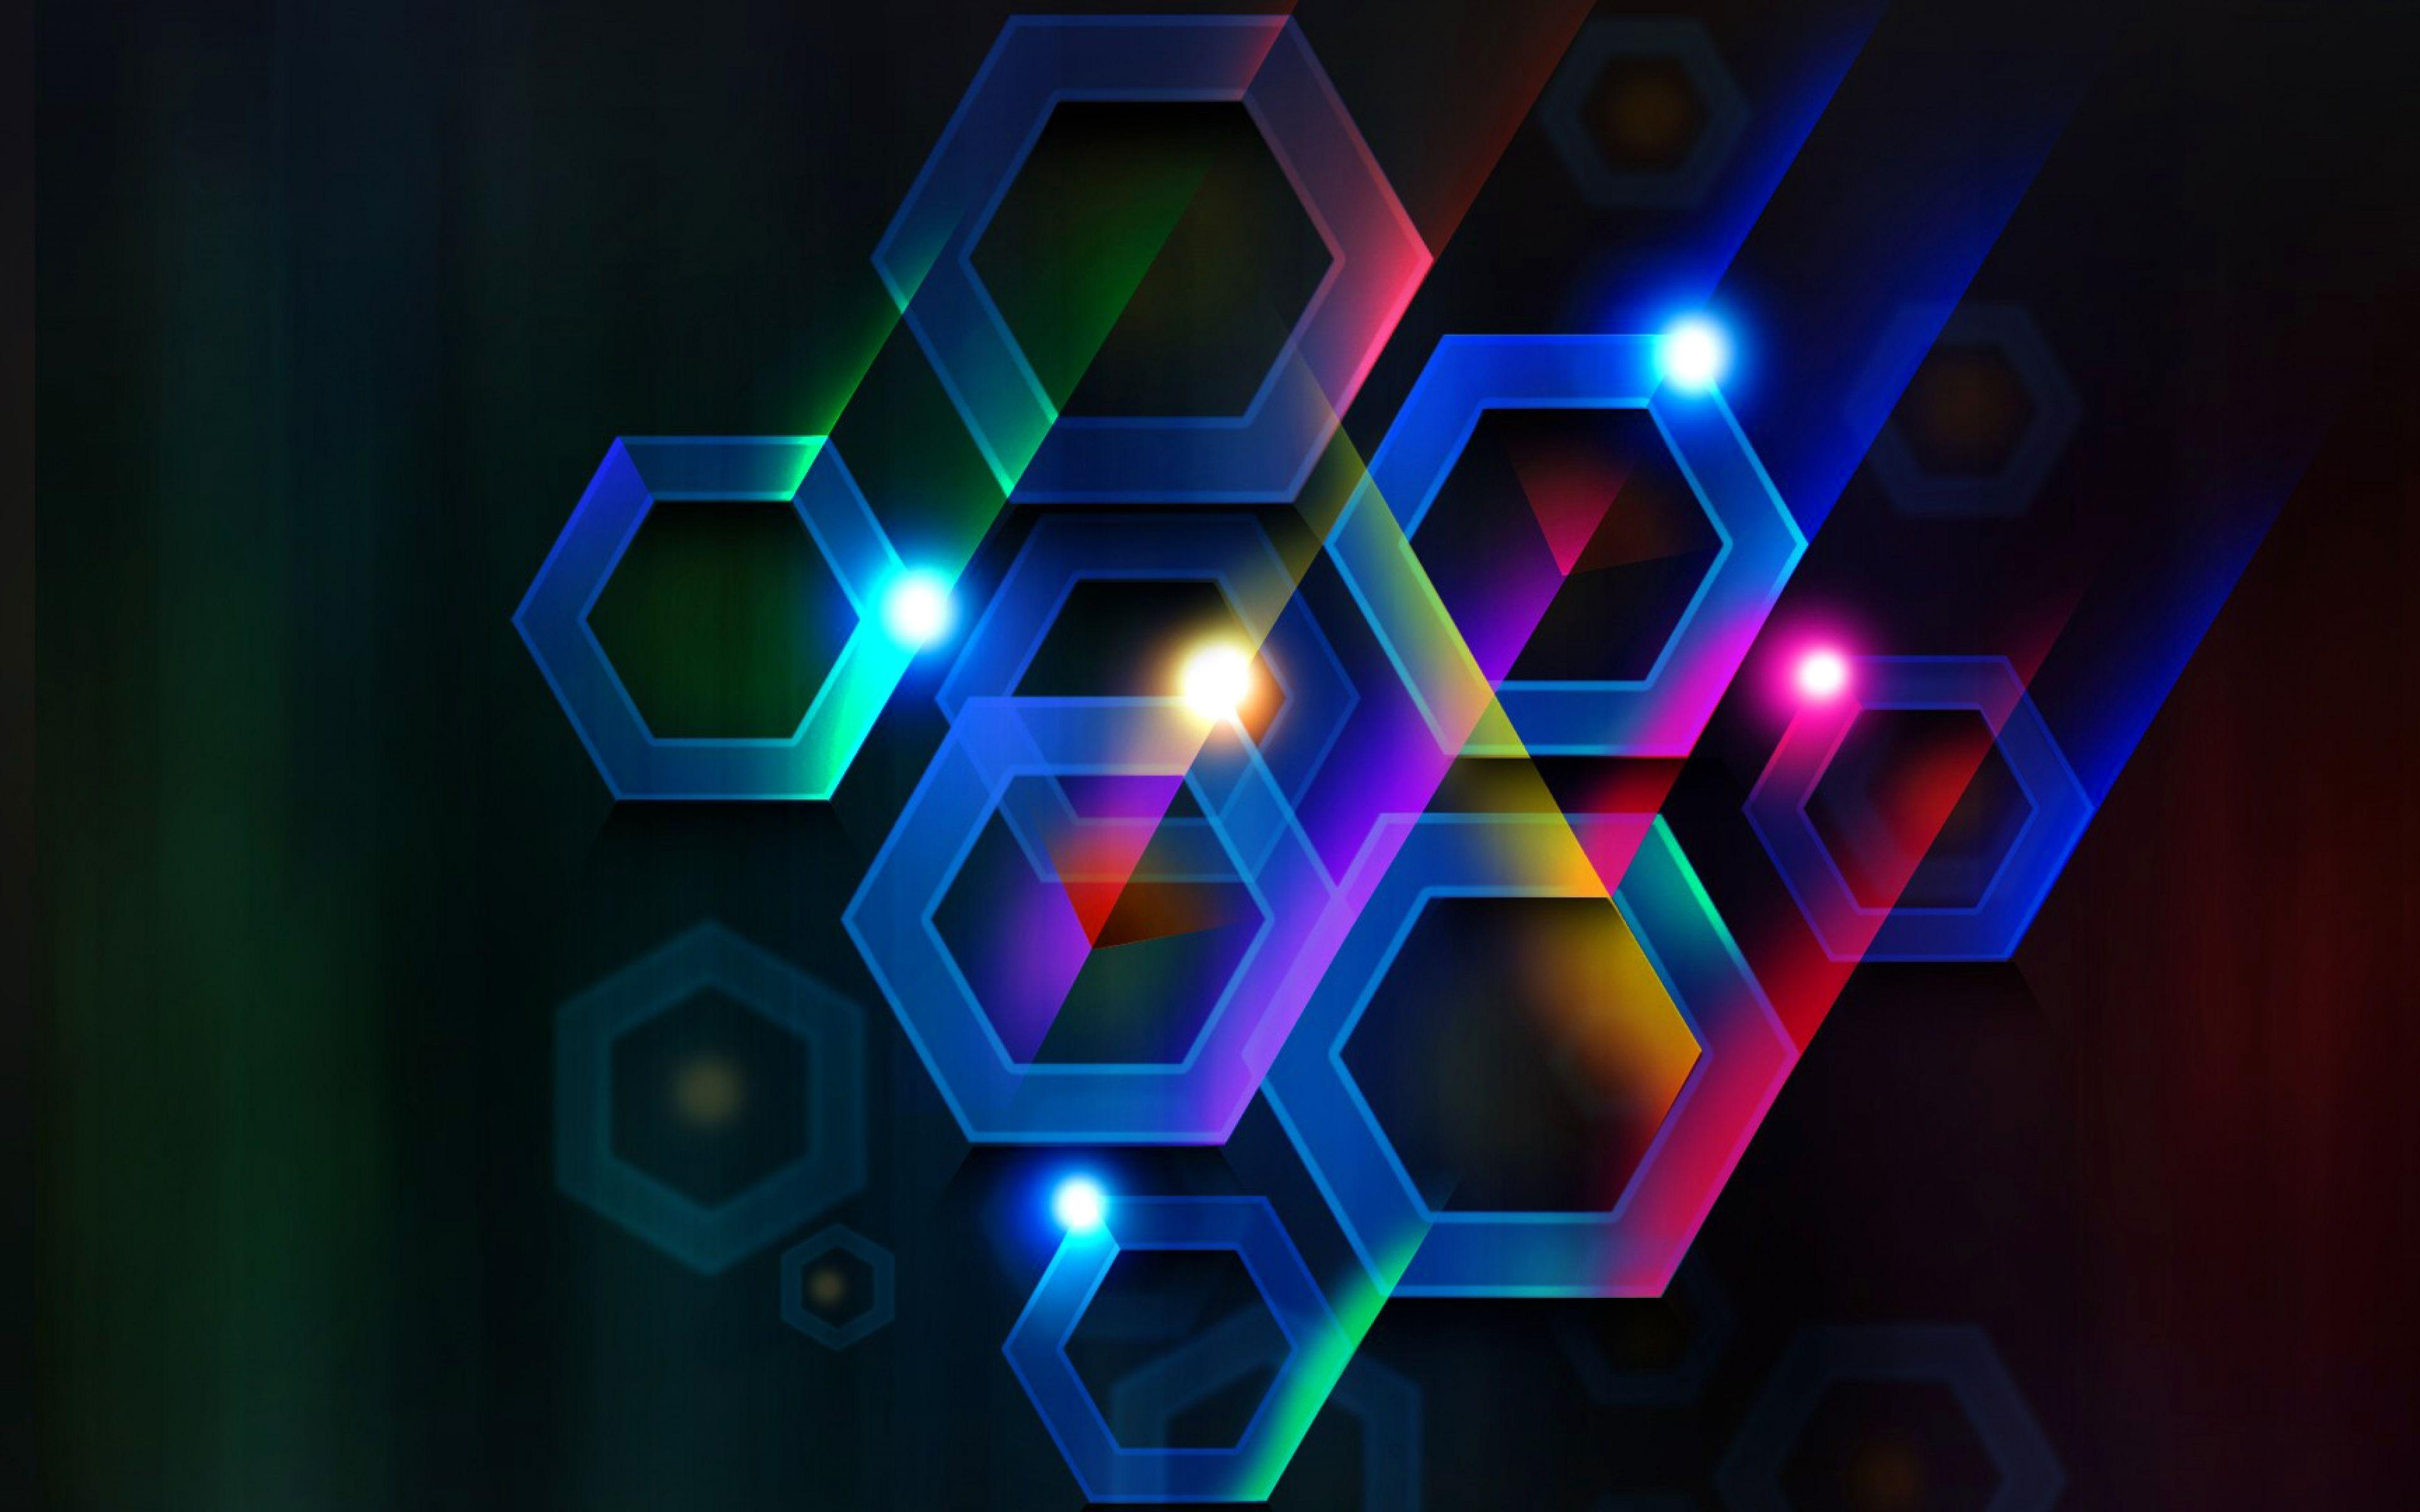 Ultra HD 4K Hexagon Wallpapers HD, Desktop Backgrounds 3840x2400 ...